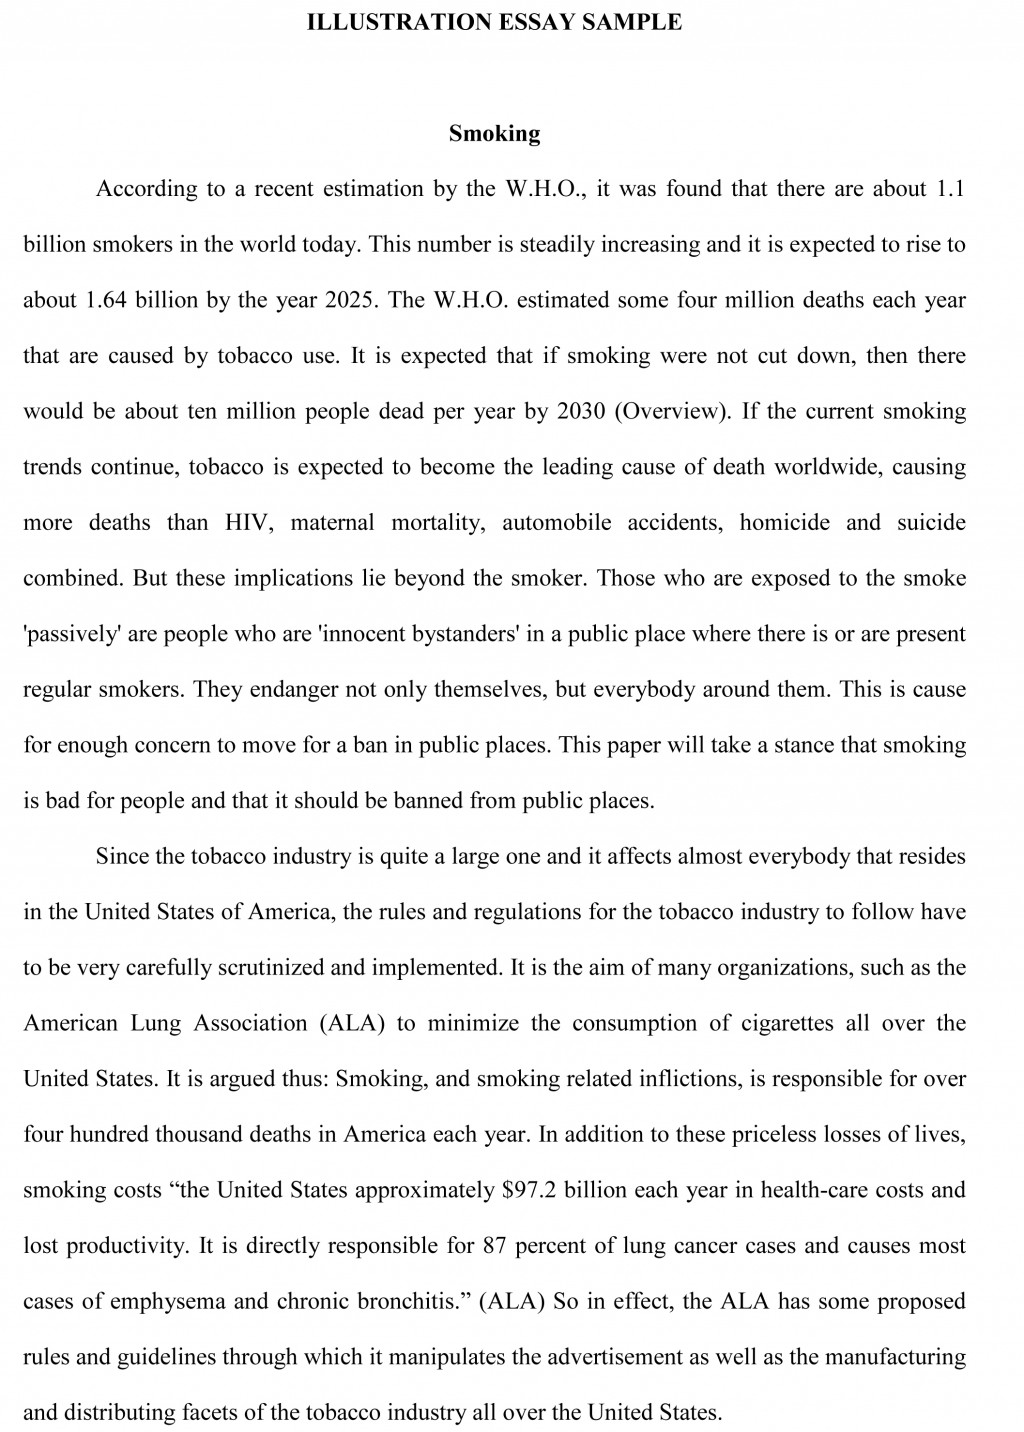 001 Illustration Essay Sample Example Fascinating Happiness My Idea Of Writing Short On In Hindi Topics Large